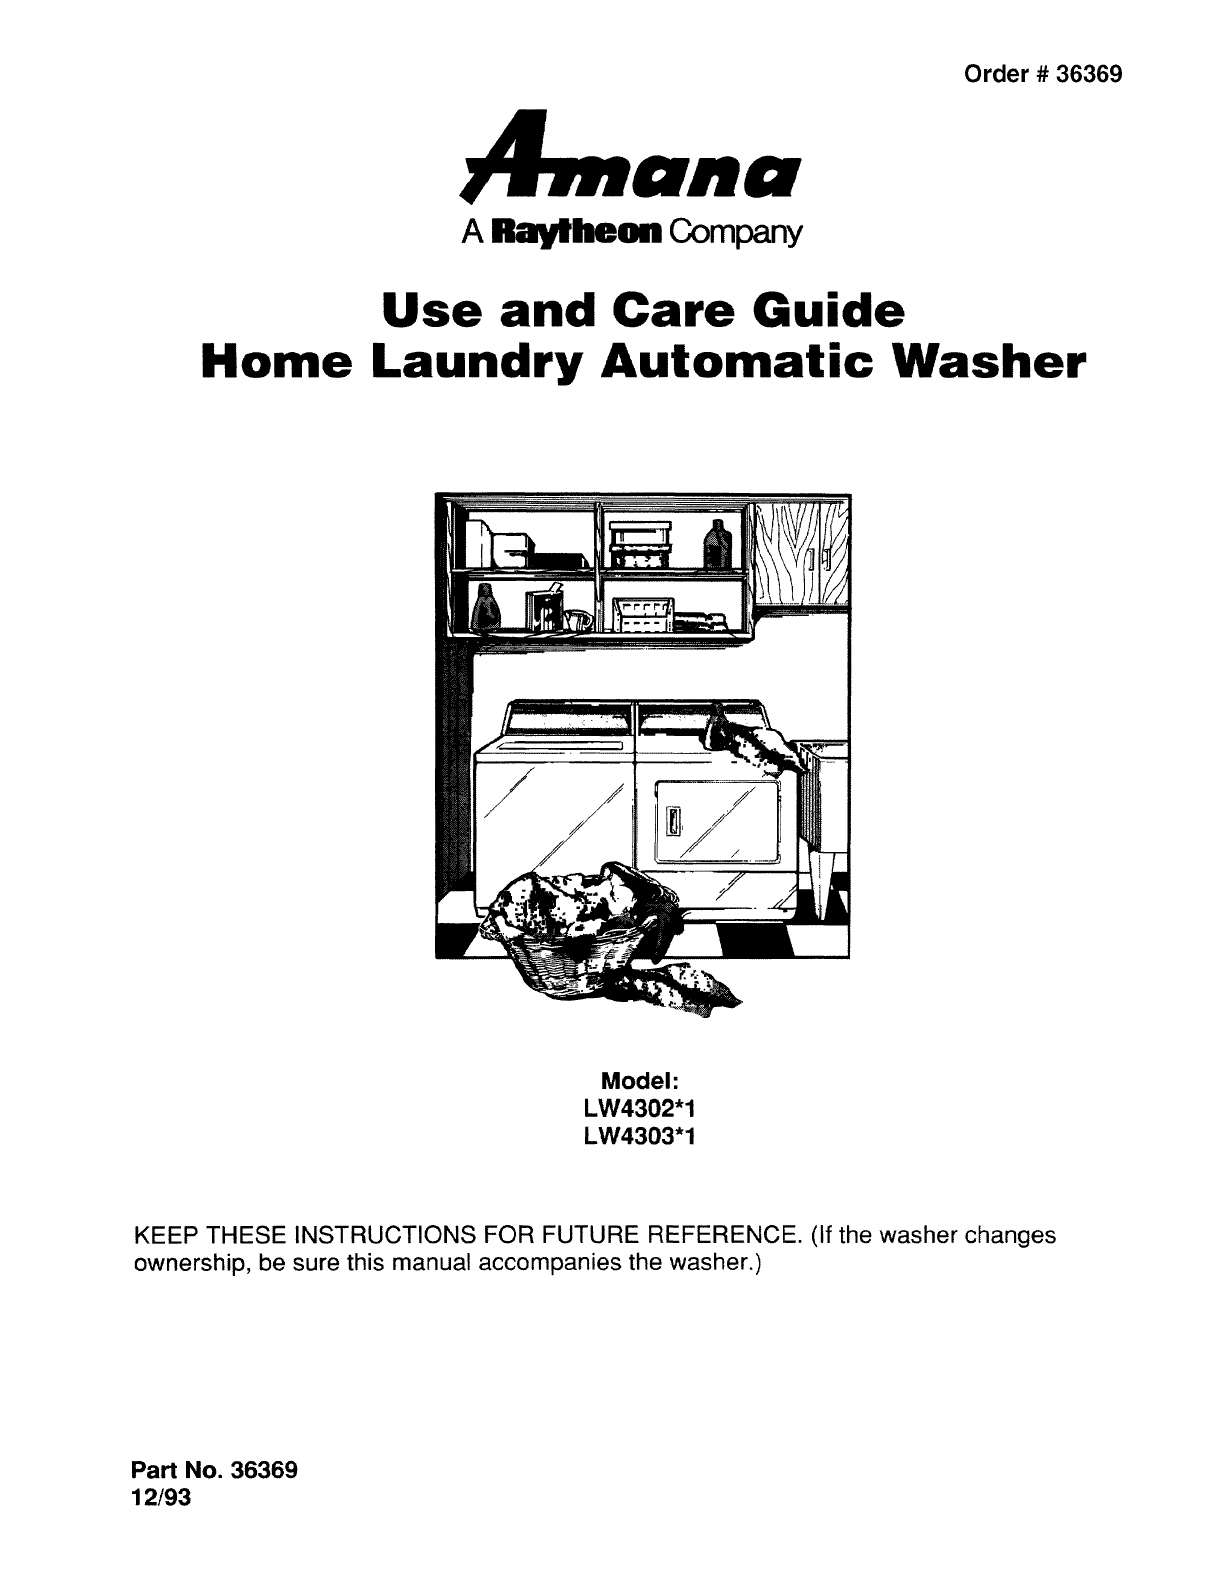 Amana Lw4303l P1163304wl User Manual Washer Manuals And Guides L0807655 Washing Machine Wiring Diagram Laundry Accessories Owners Installation